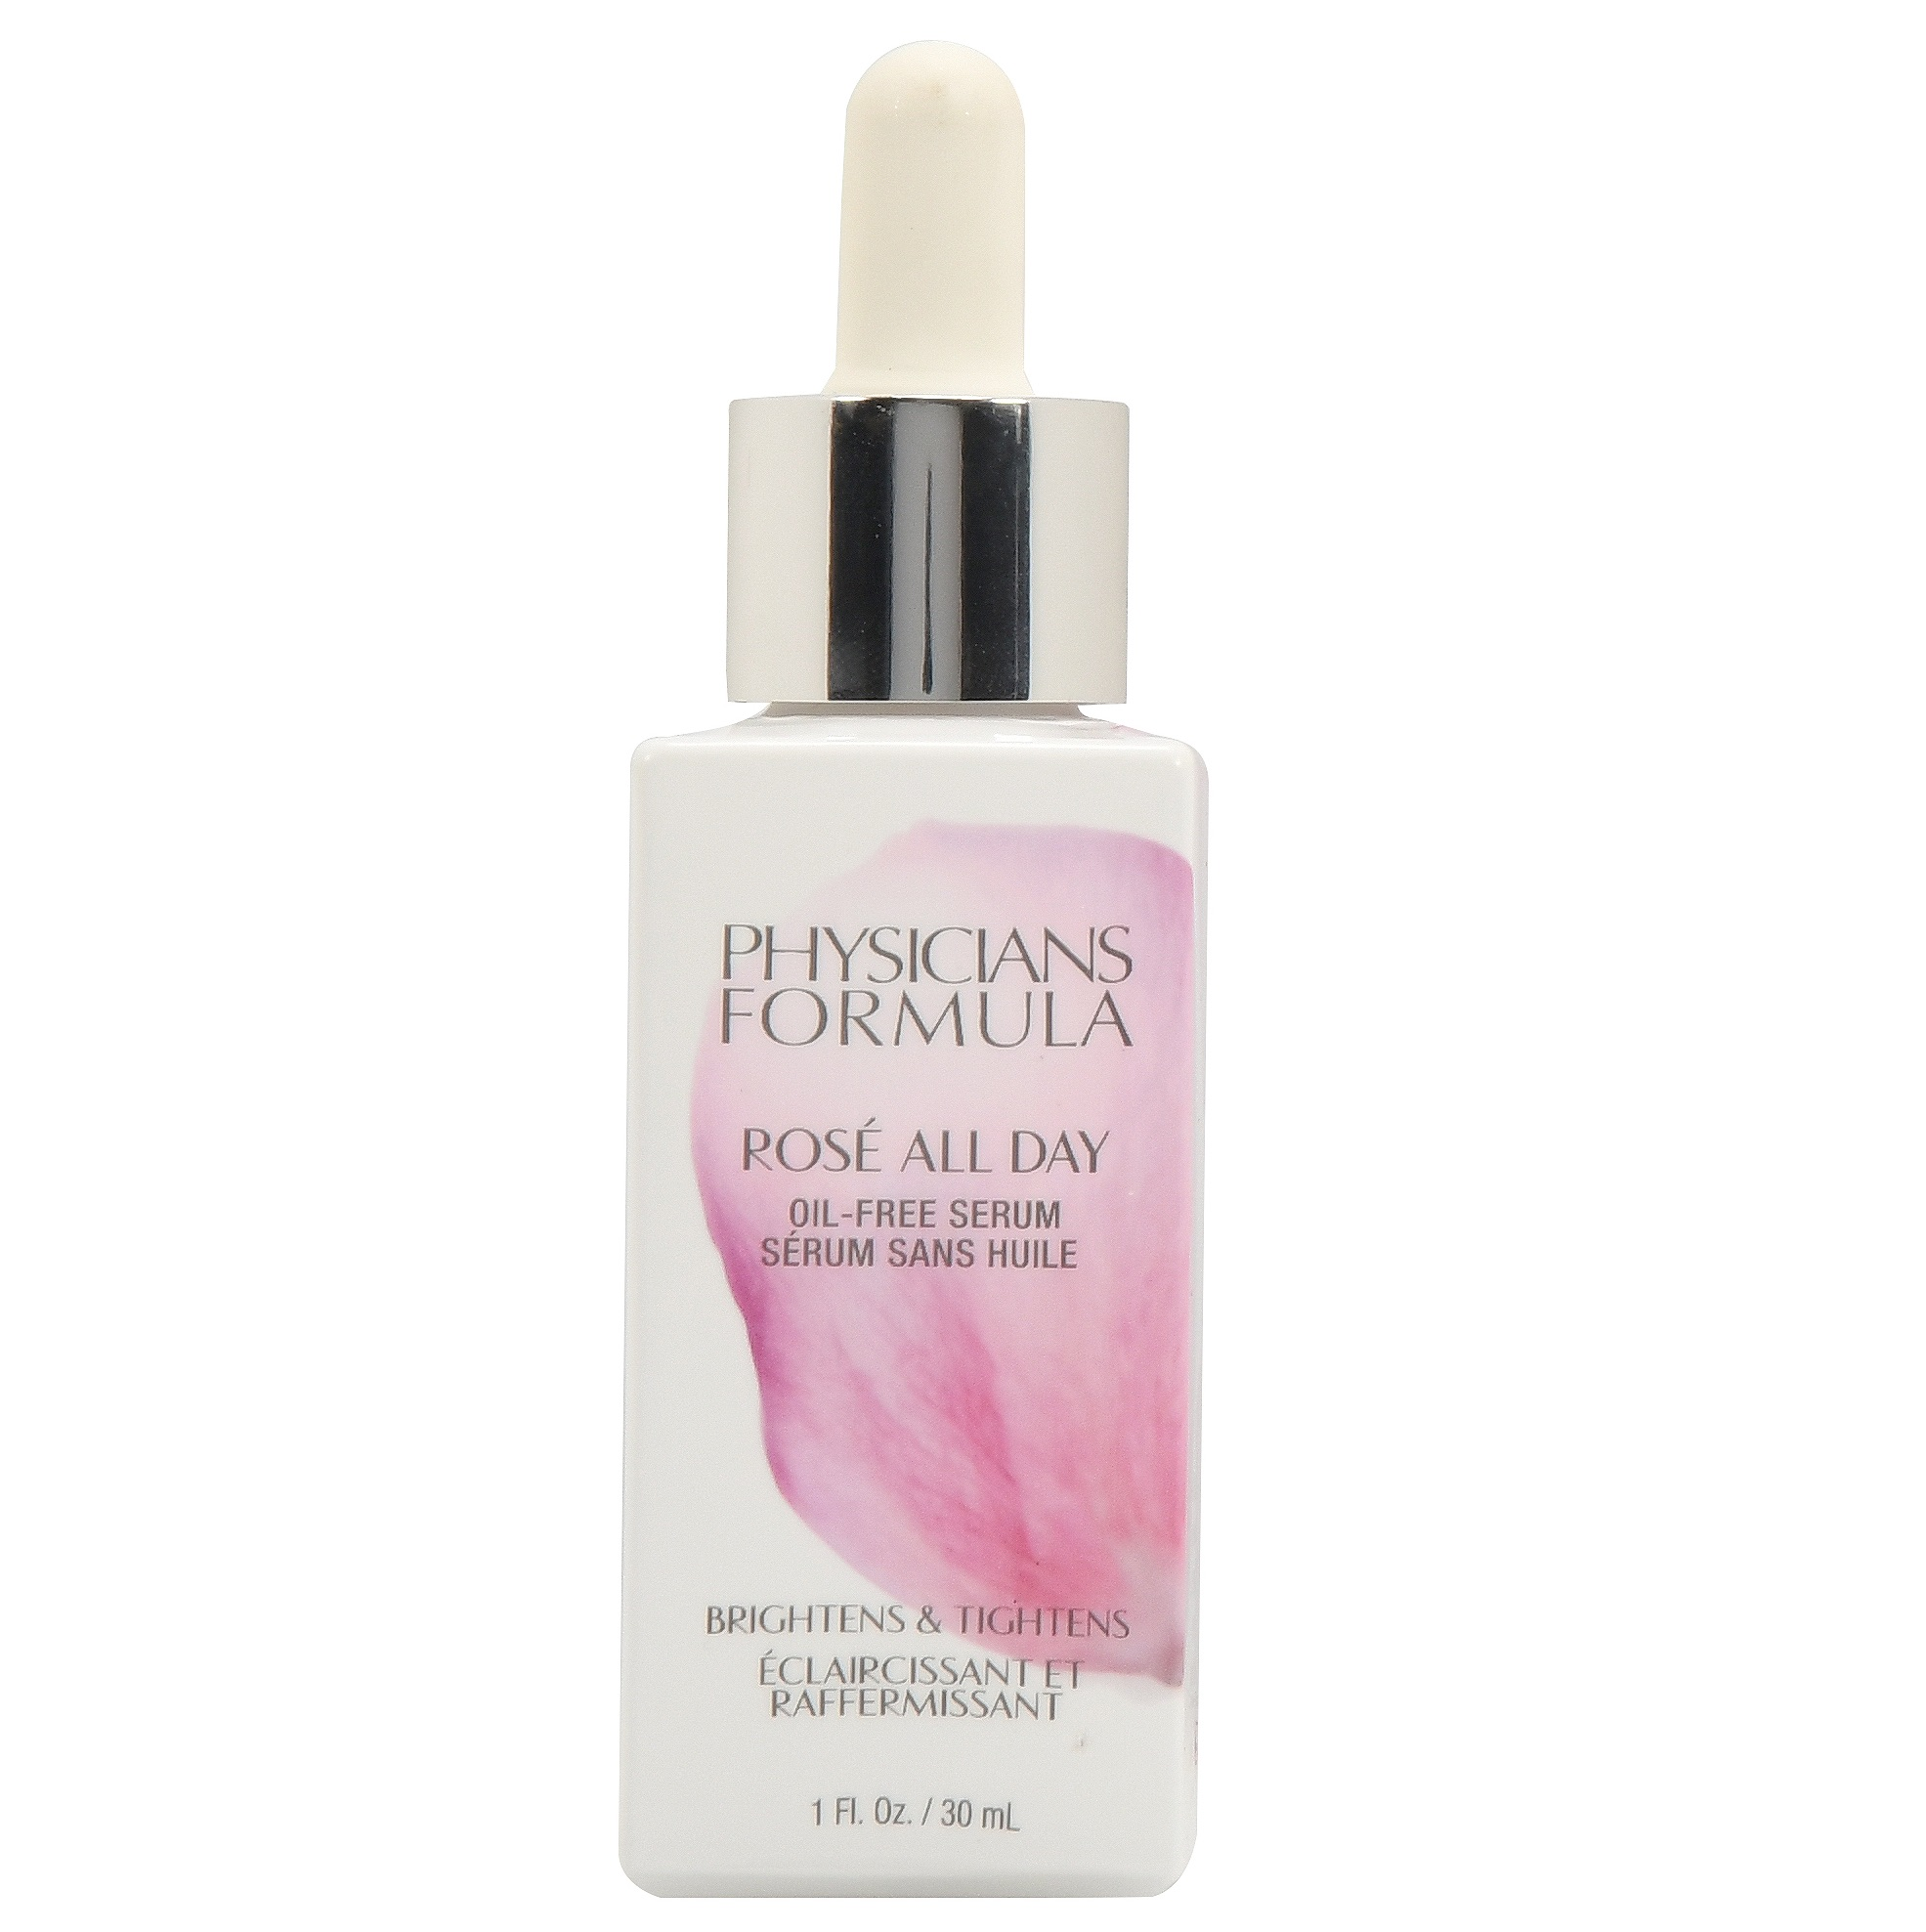 Physicians Formula Pf Rose All Day Oil Free Serum